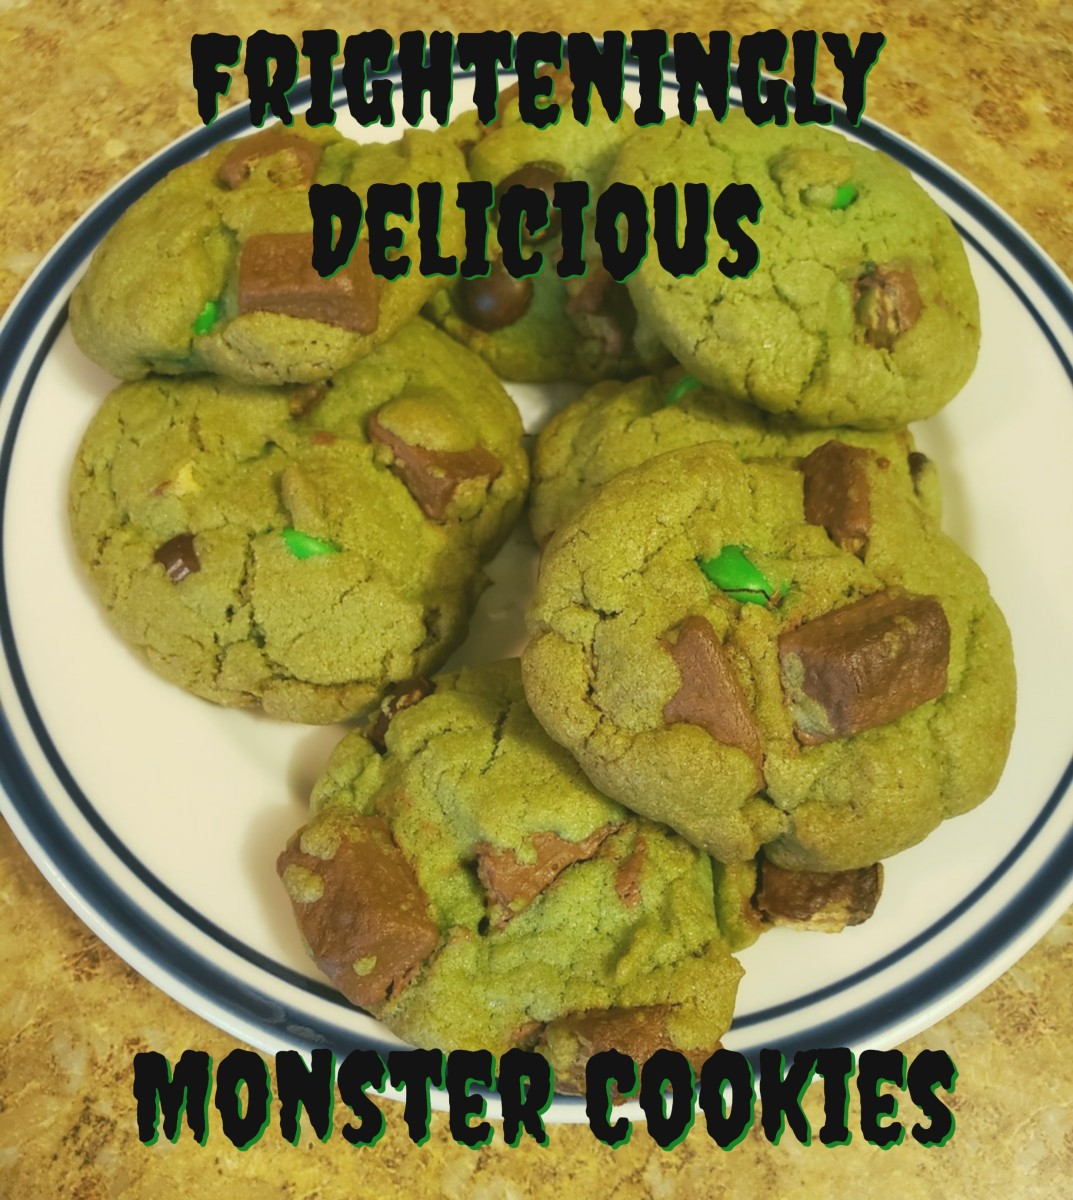 How to Make Frighteningly Delicious Monster Cookies